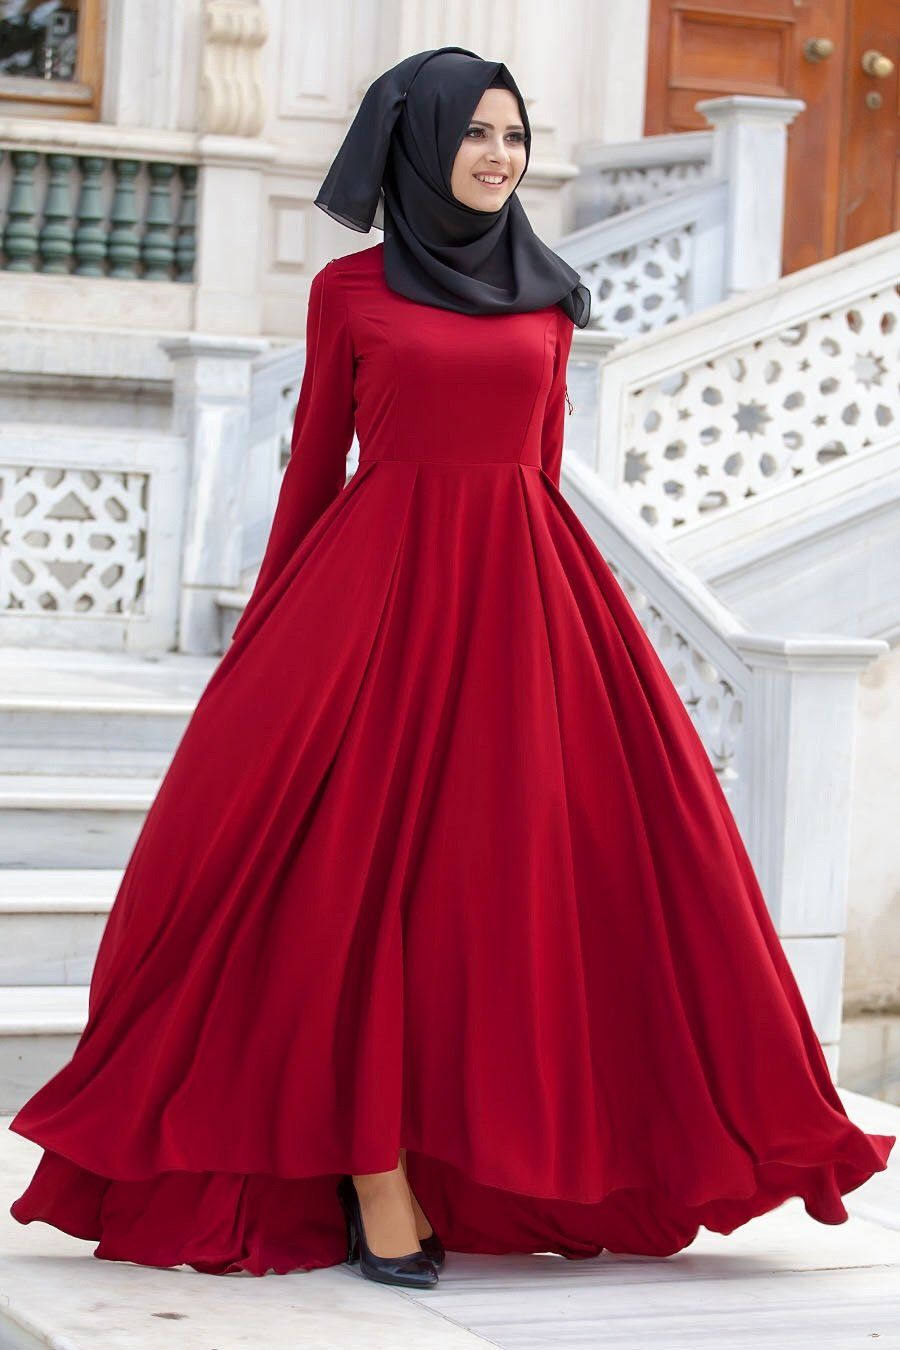 Red formal ball gown hijab fashion pinterest ball gowns